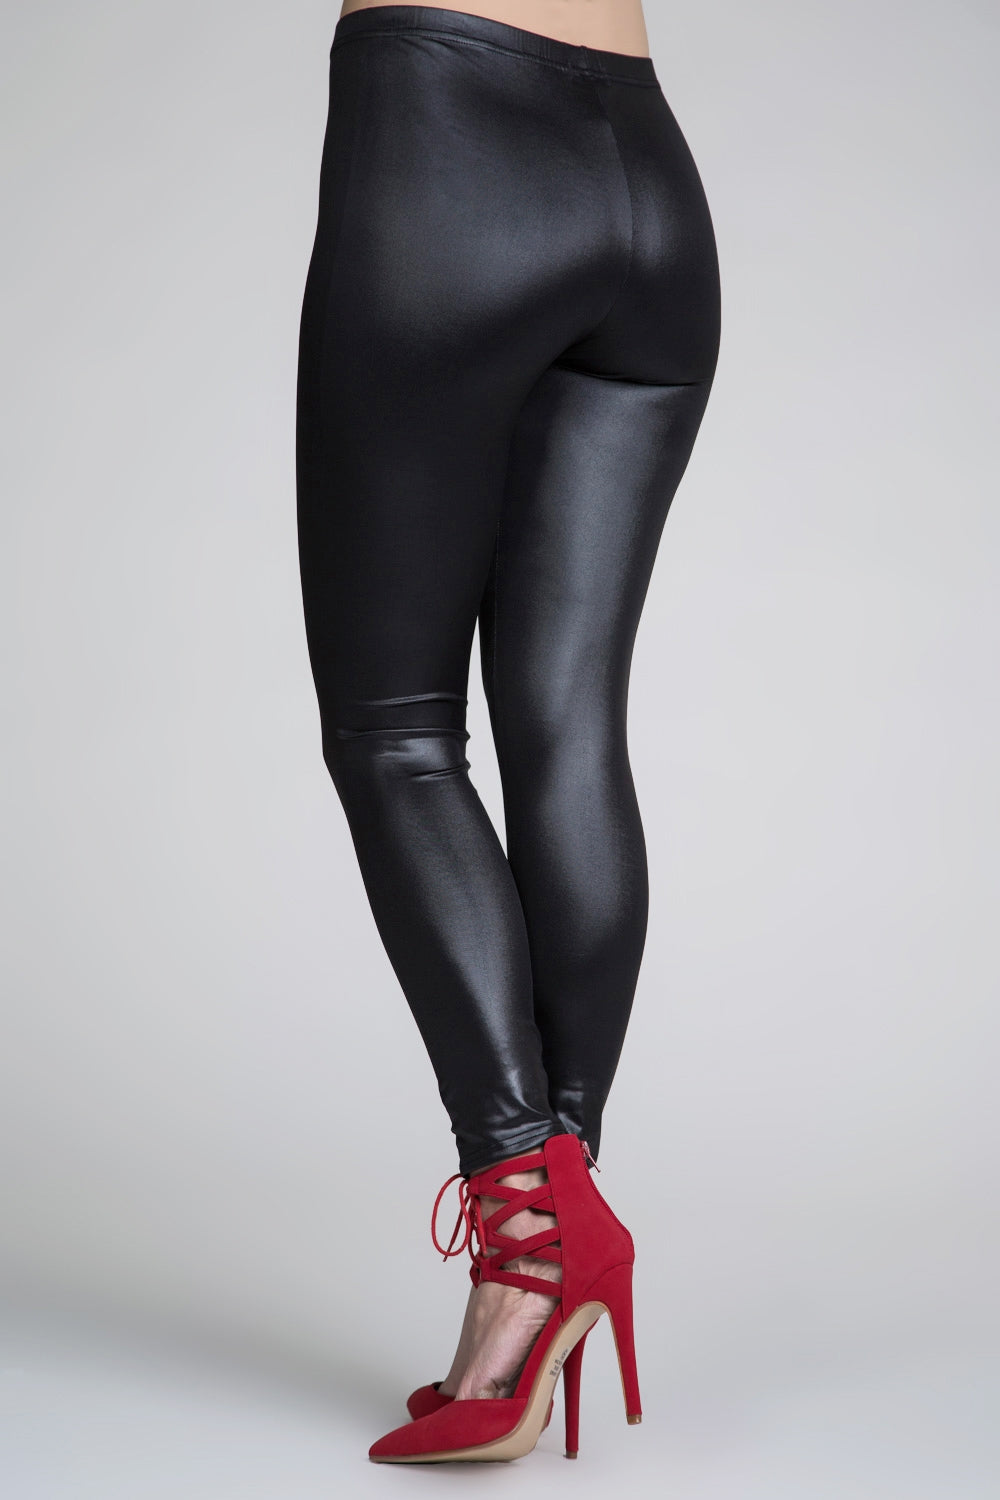 Type 4 The One That I Want Leggings